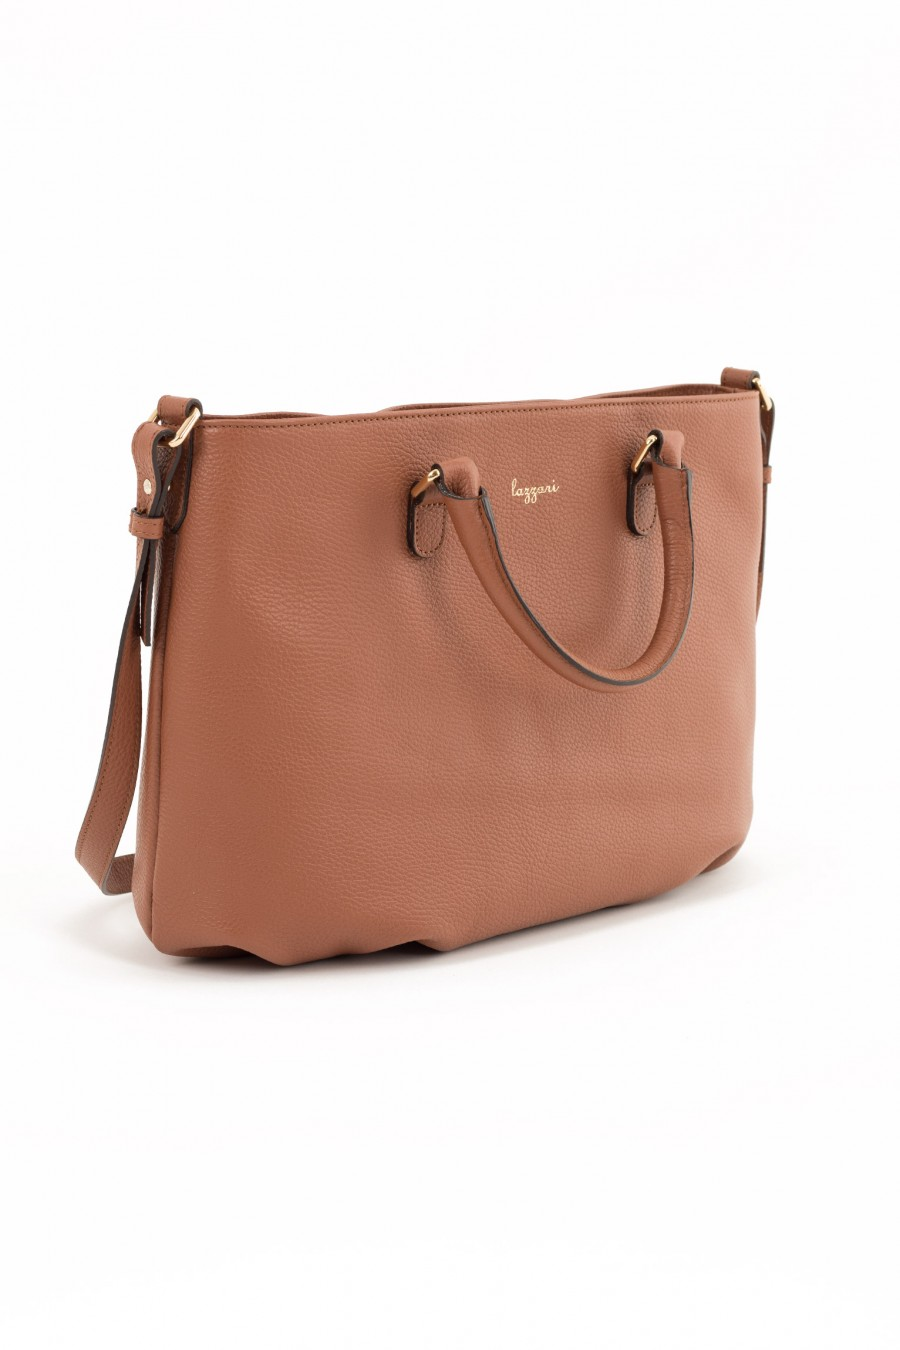 Leather brown large bag